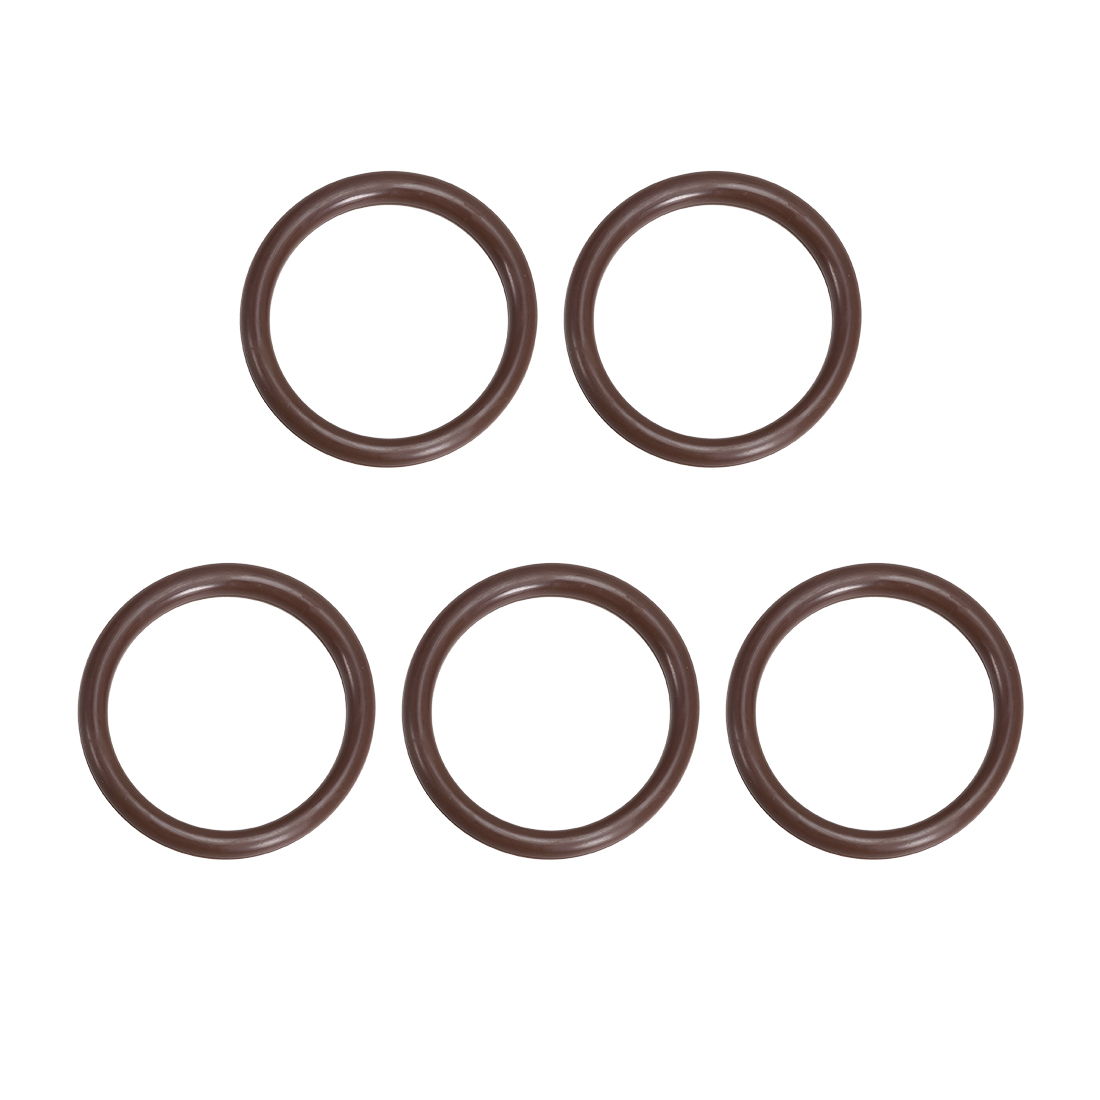 5 Pcs Fluororubber Gasket Sanitary Clamp Washer 52mm x 41mm O-Ring